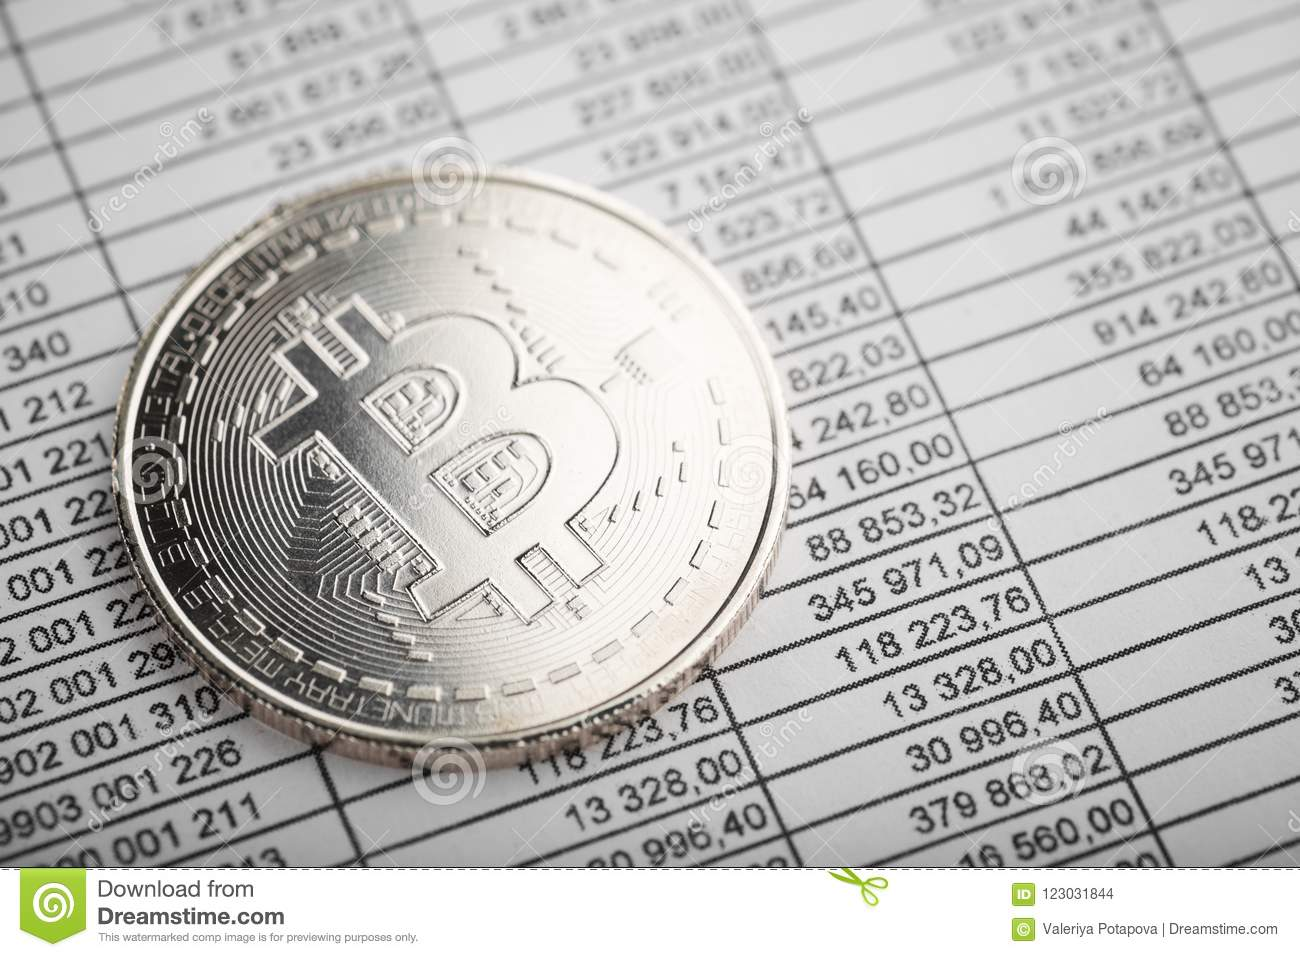 bitcoin max number of coins